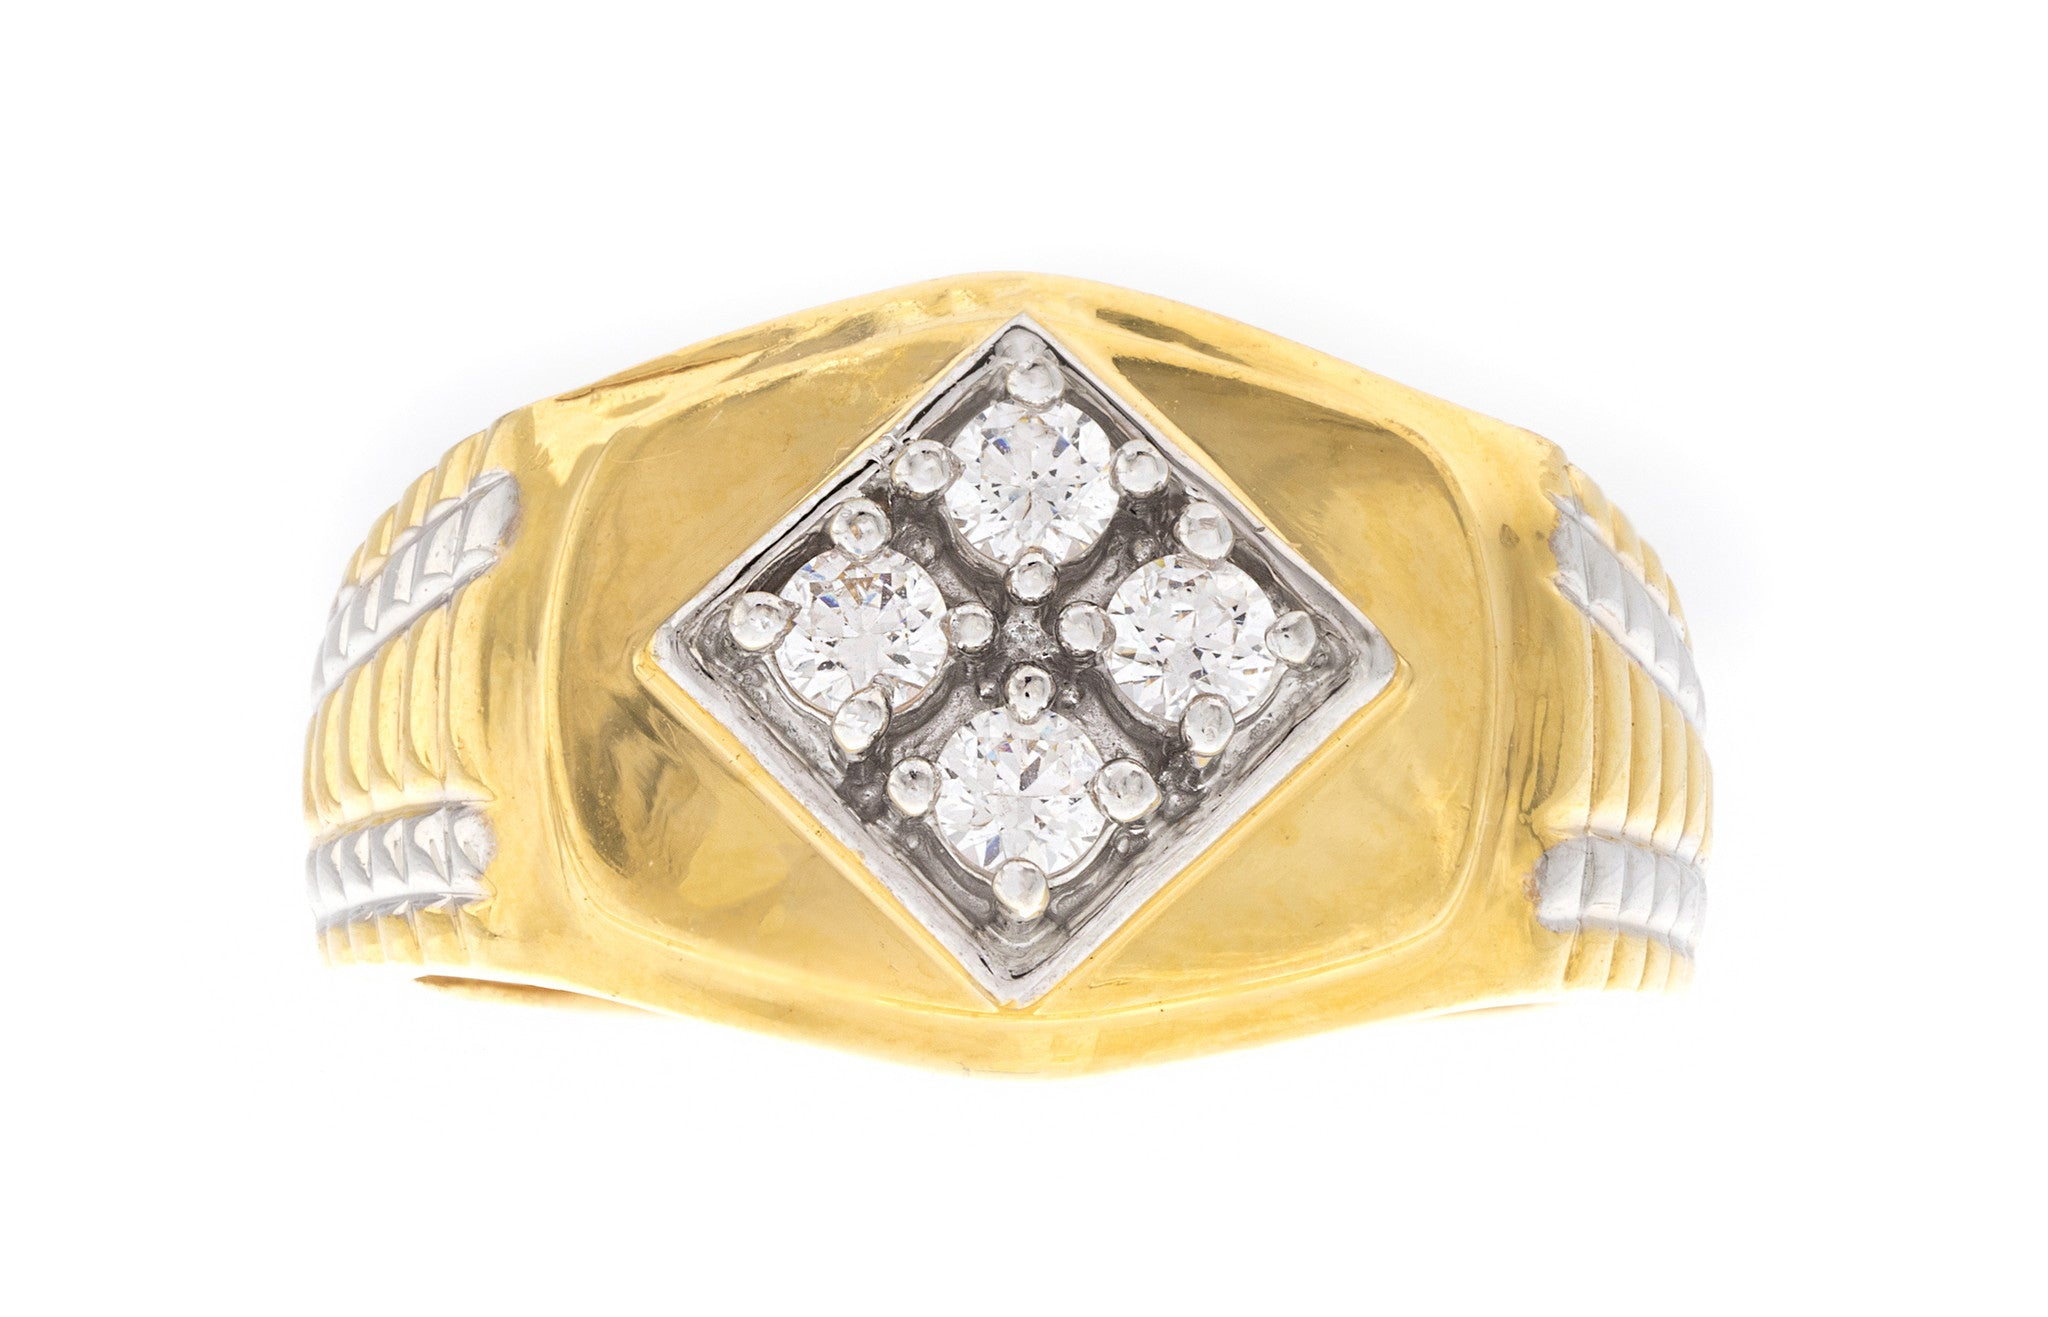 22ct Yellow Gold Cubic Zirconia Men's Ring, Minar Jewellers - 3